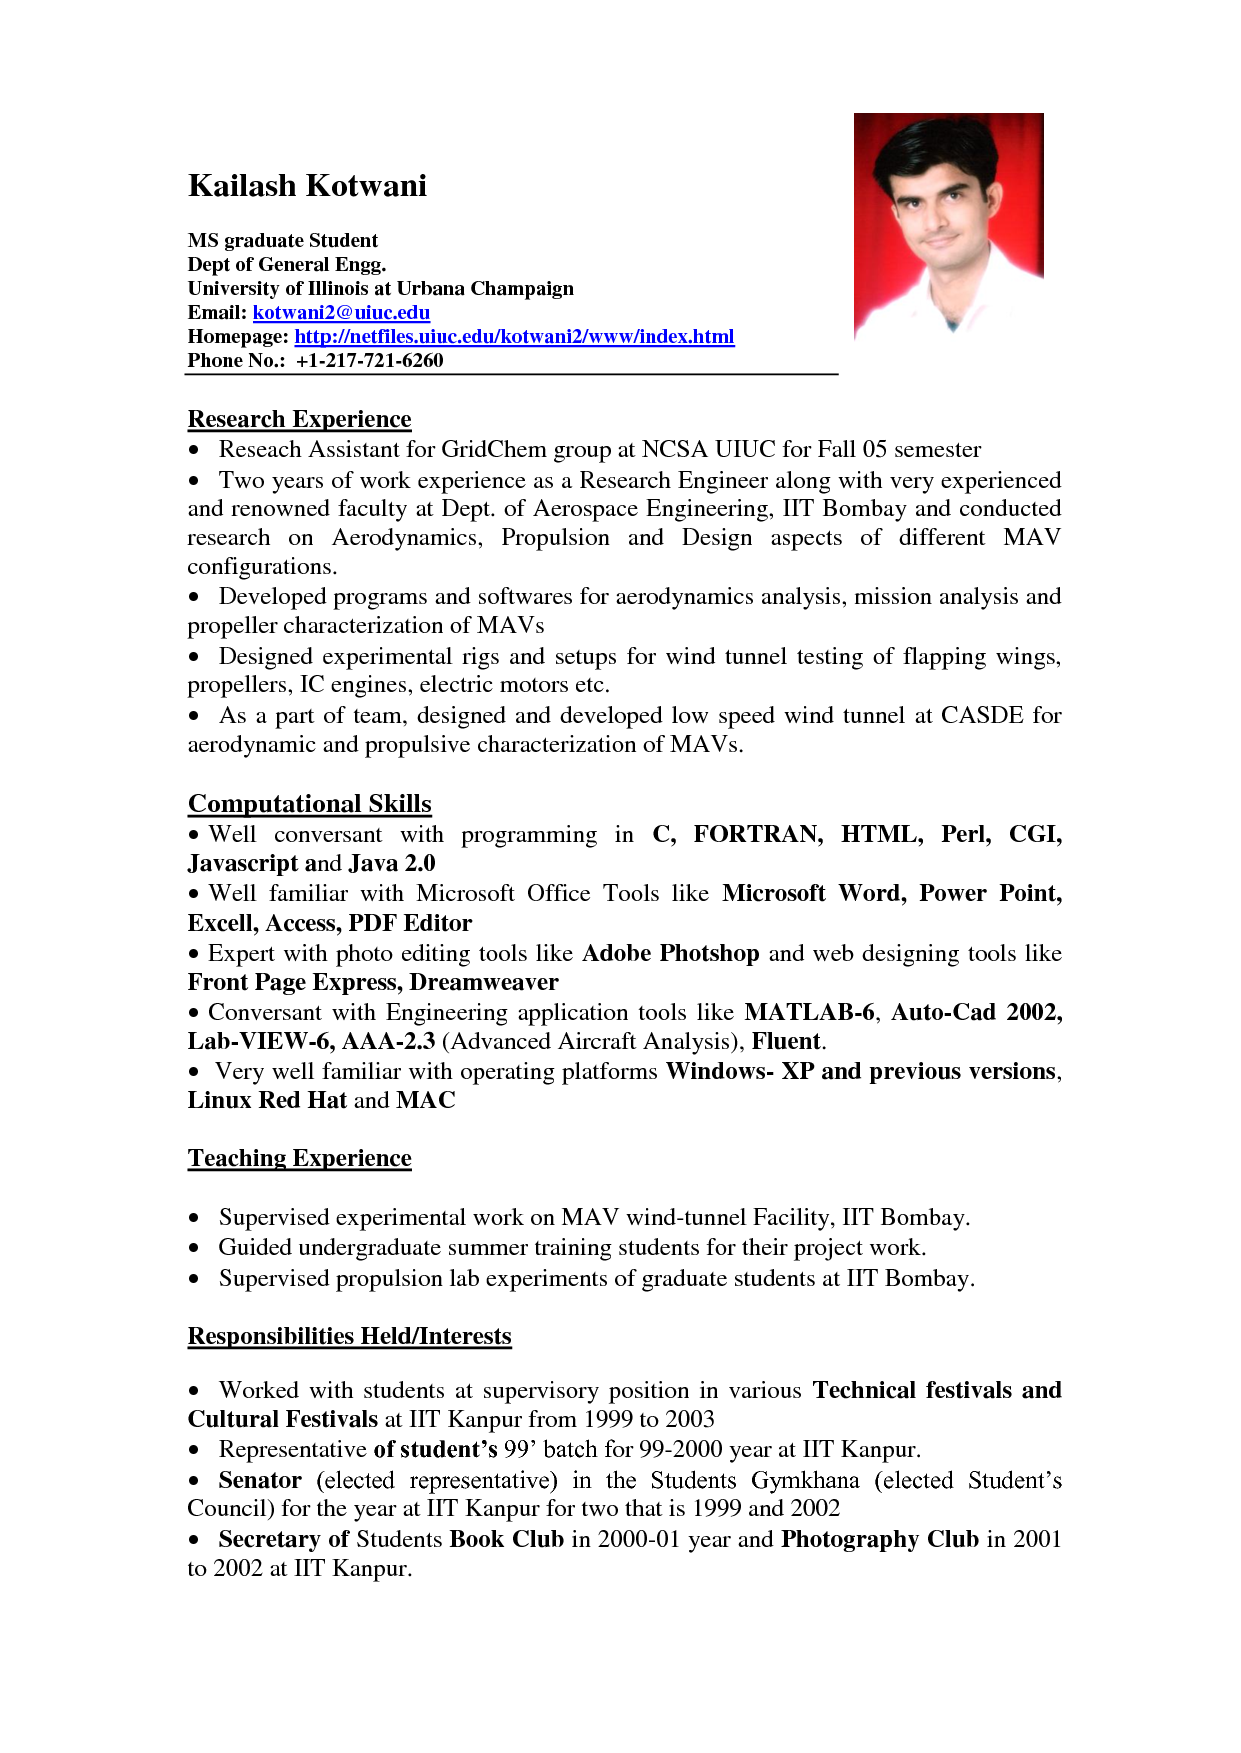 High School Student Resume Examples No Work Experience No Work Experience  Resume Content. How To Write A Resume Resume .  Resume For Someone With No Work Experience